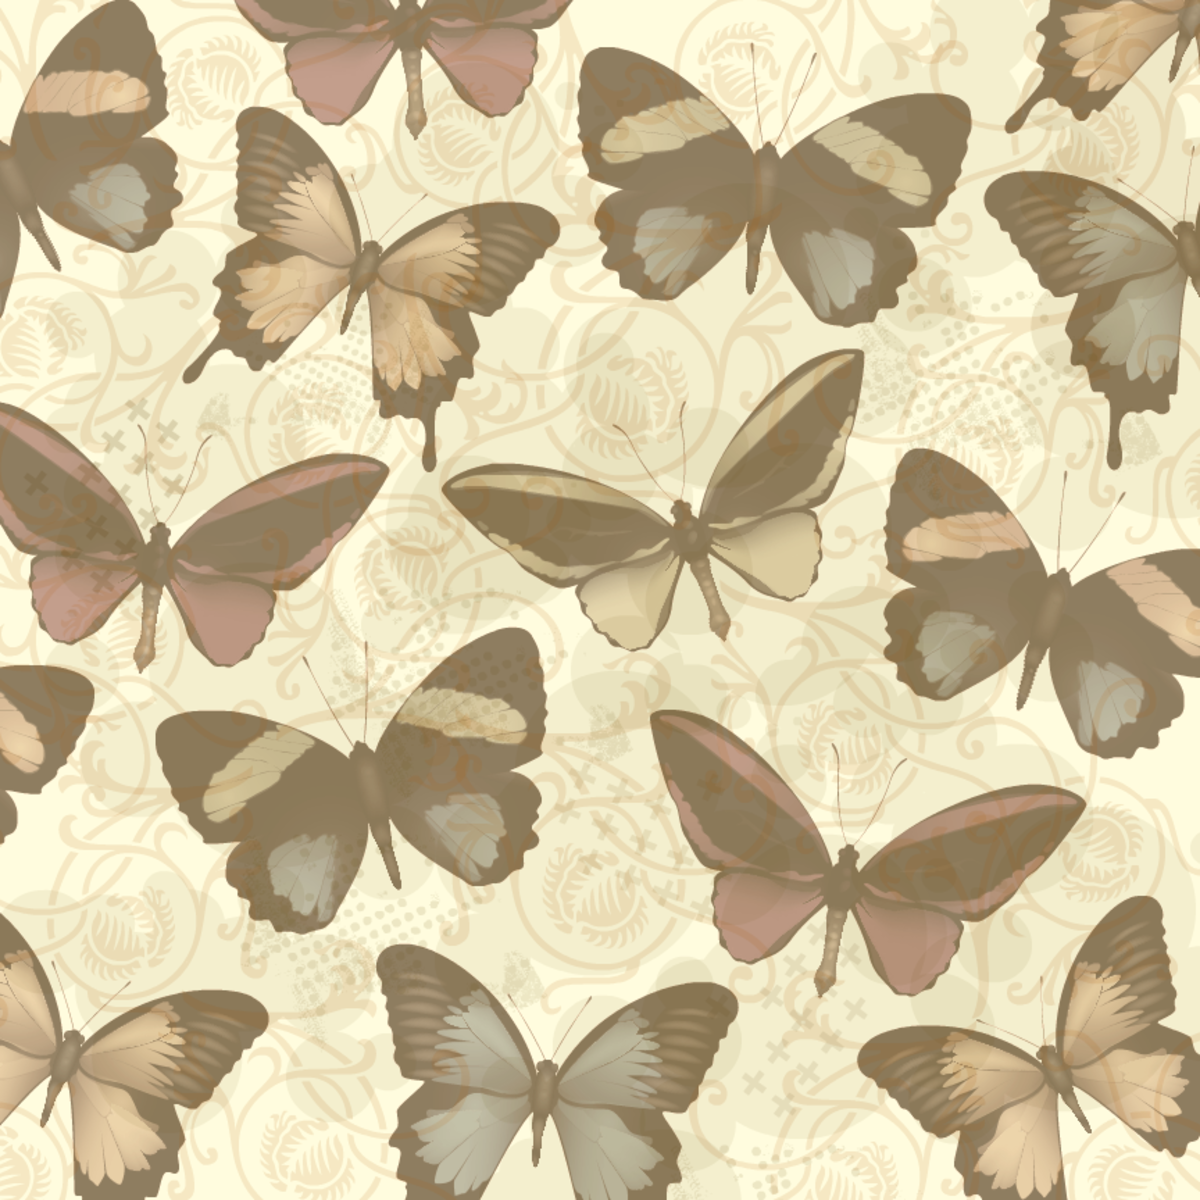 Vintage-look sepia tone butterfly scrapbook paper with scrolls and mottled background